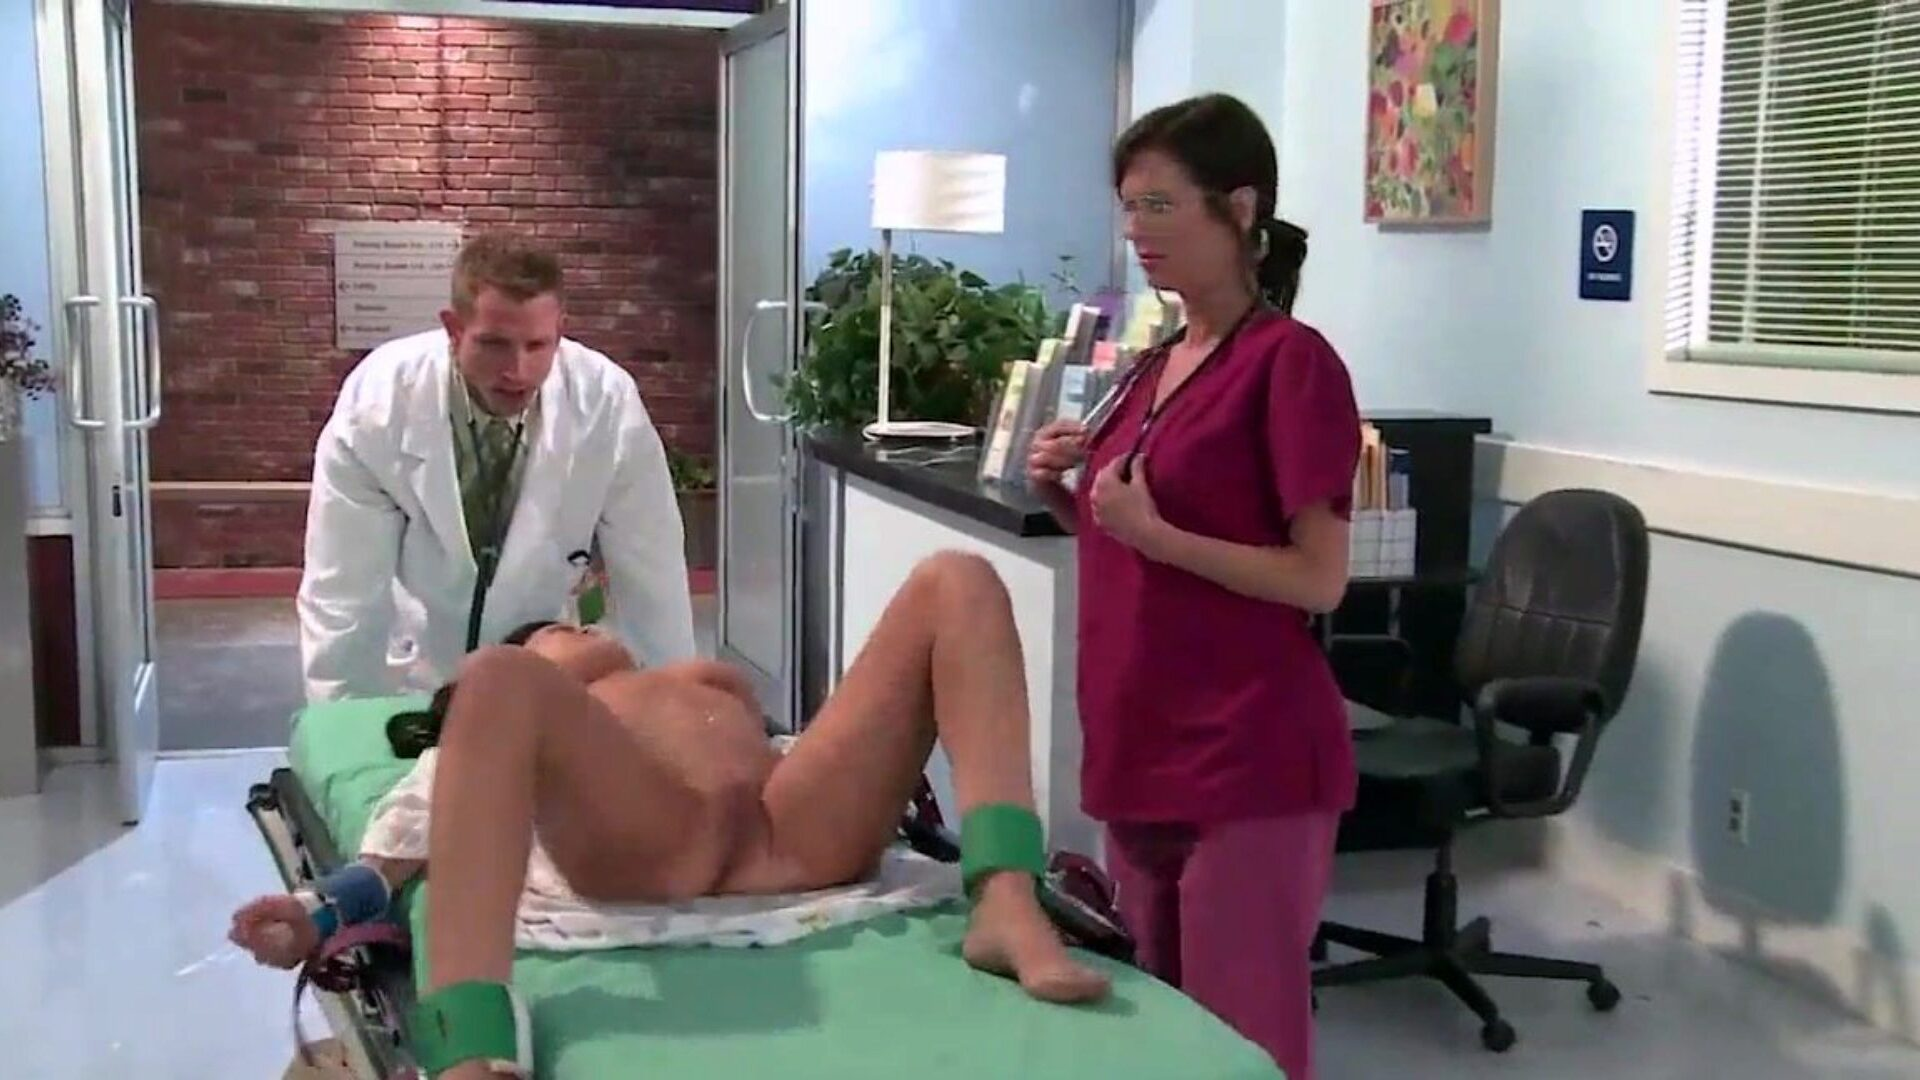 Brazzers - Doctor Adventures -  The Flatline Asshole episode starring Brandy Aniston and Bill Bailey